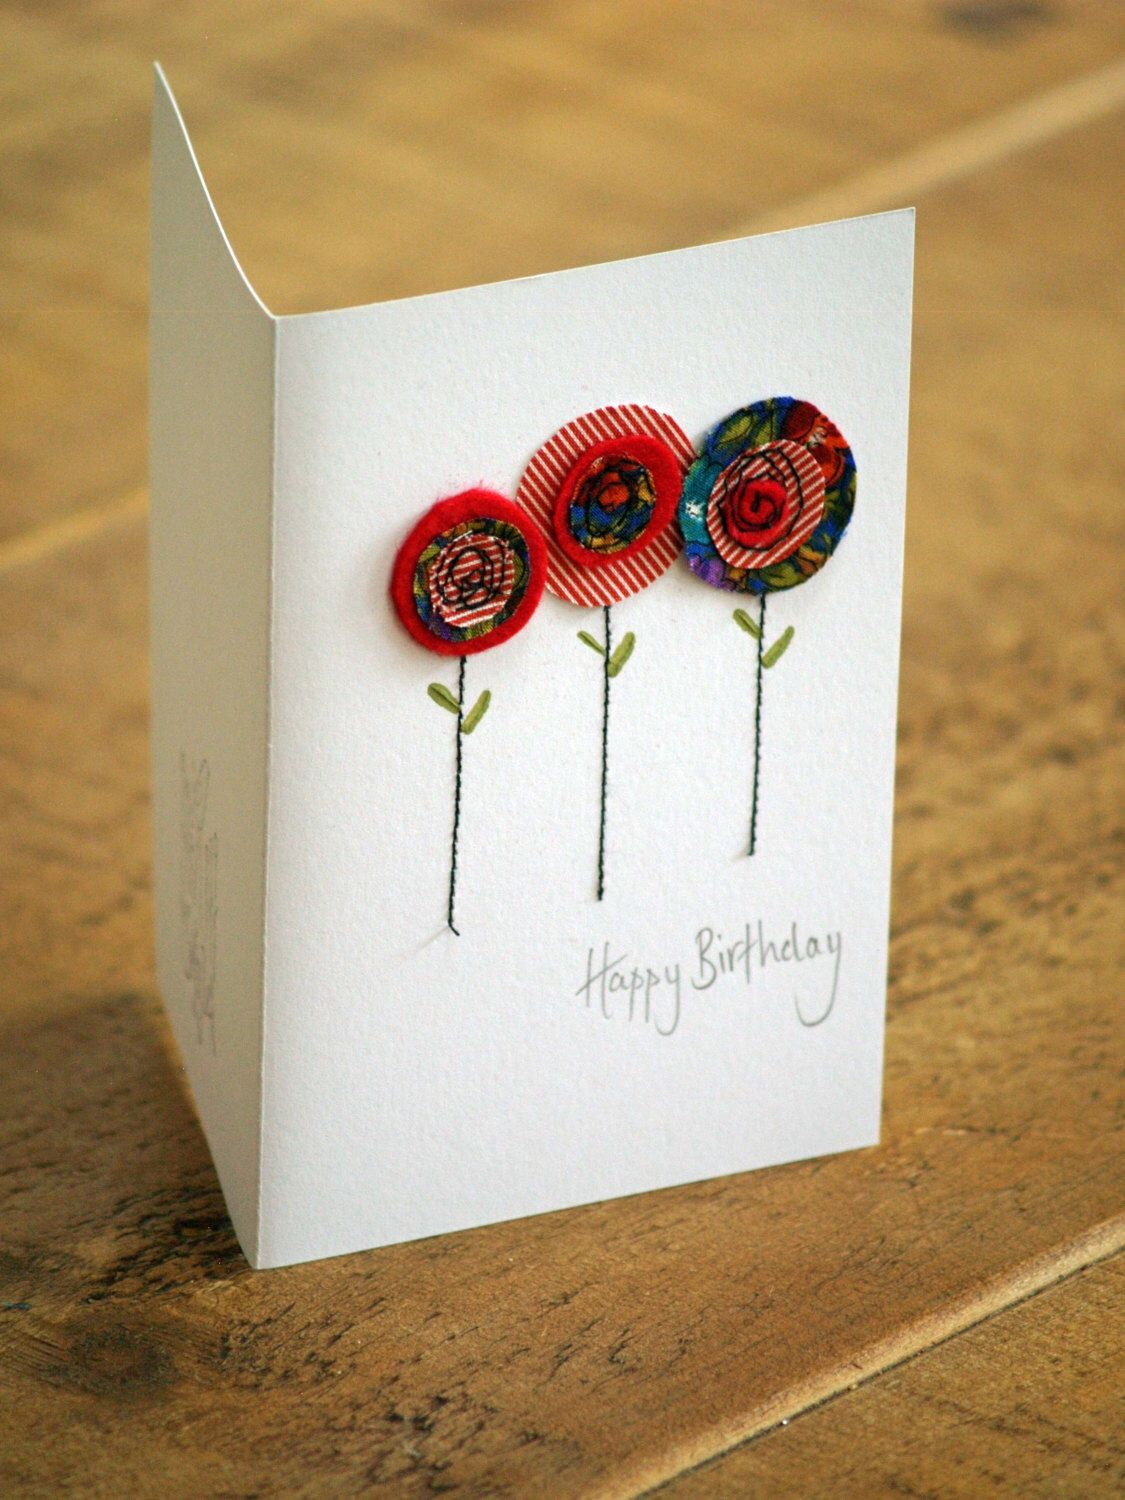 Handmade Poppy Card Red Poppy Fabric Card With Hand Stitching Hand